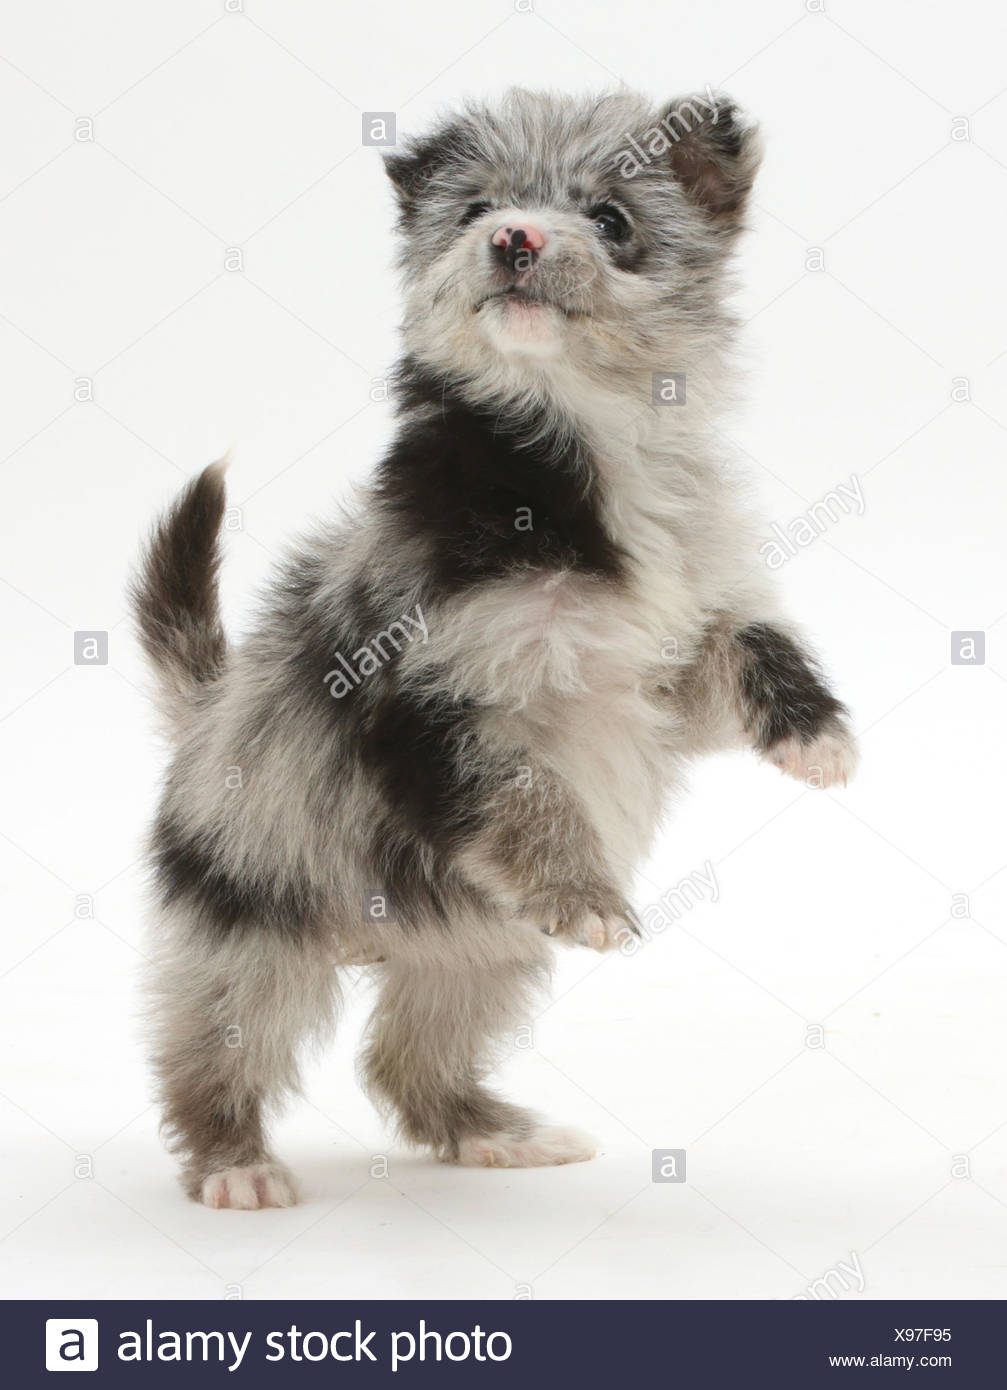 ChiPoo puppy, Chihuahua cross Poodle, Roxy, age 12 weeks, standing on hind legs. - Stock Image